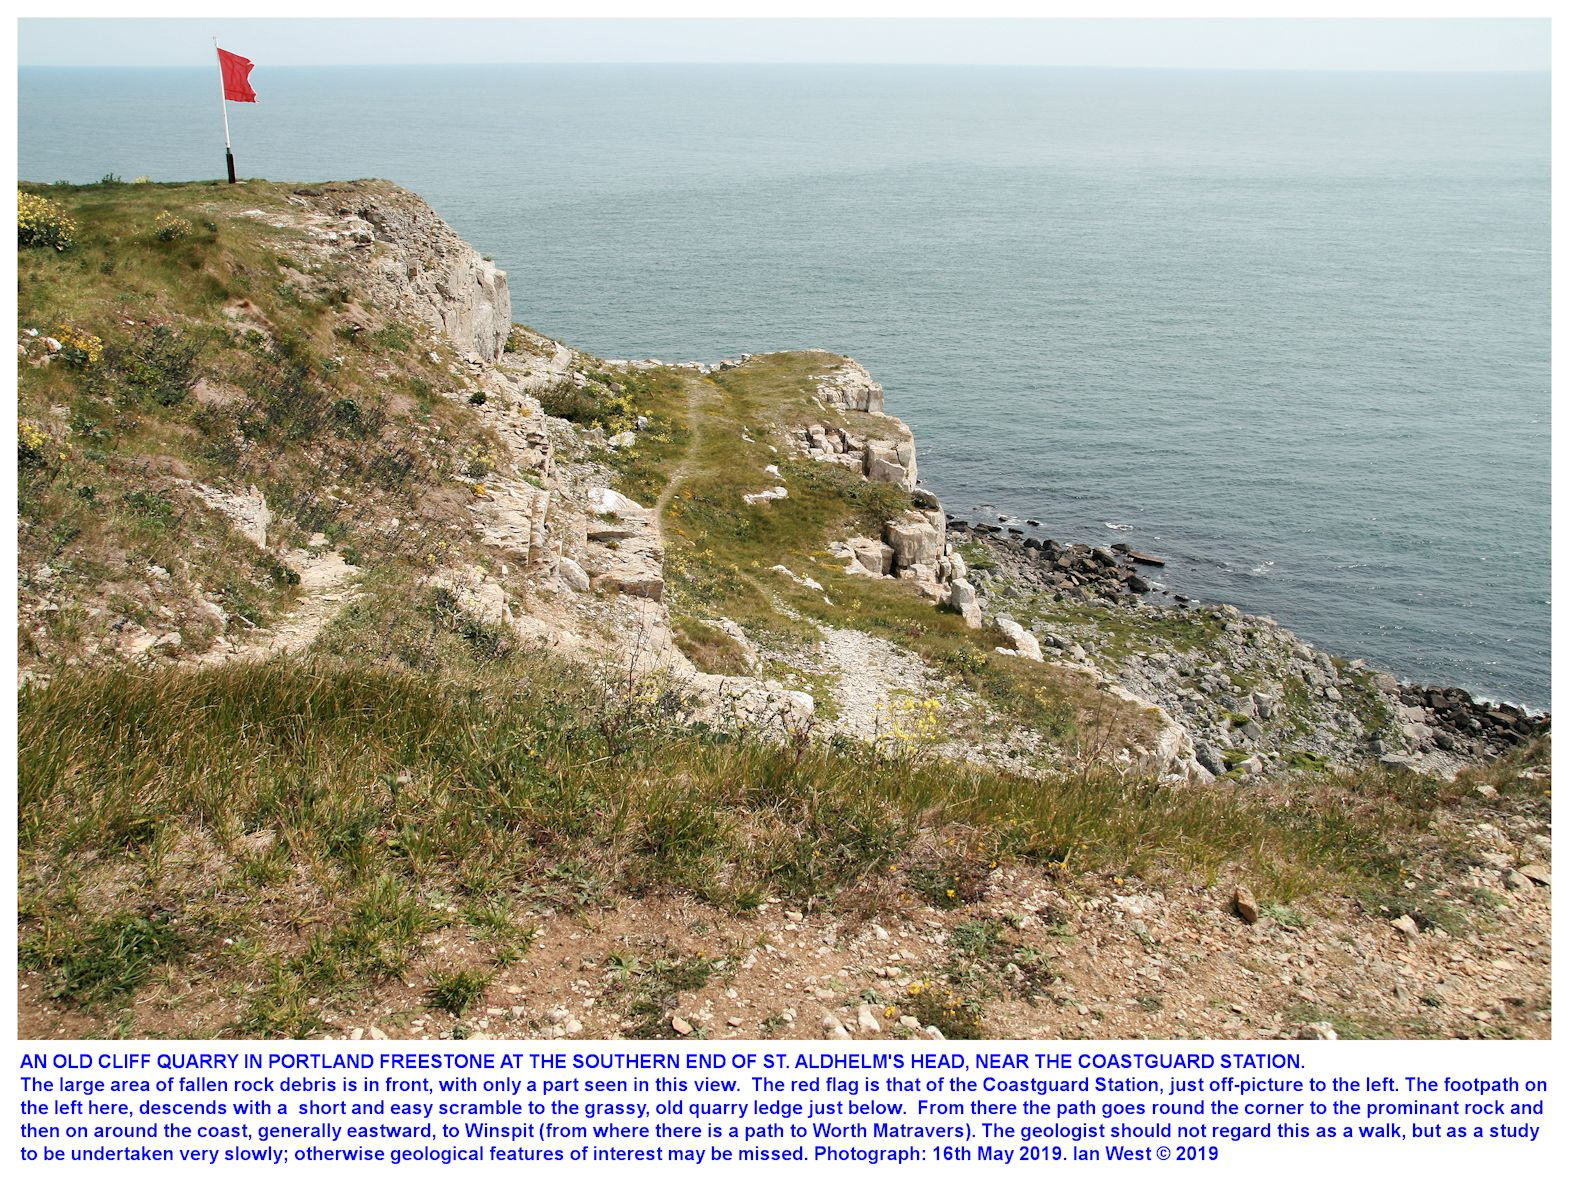 Going down to the old cliff quarry near the Coastguard Station at the southern end of St. Aldhelm's Head, Dorset, 16th May 2019